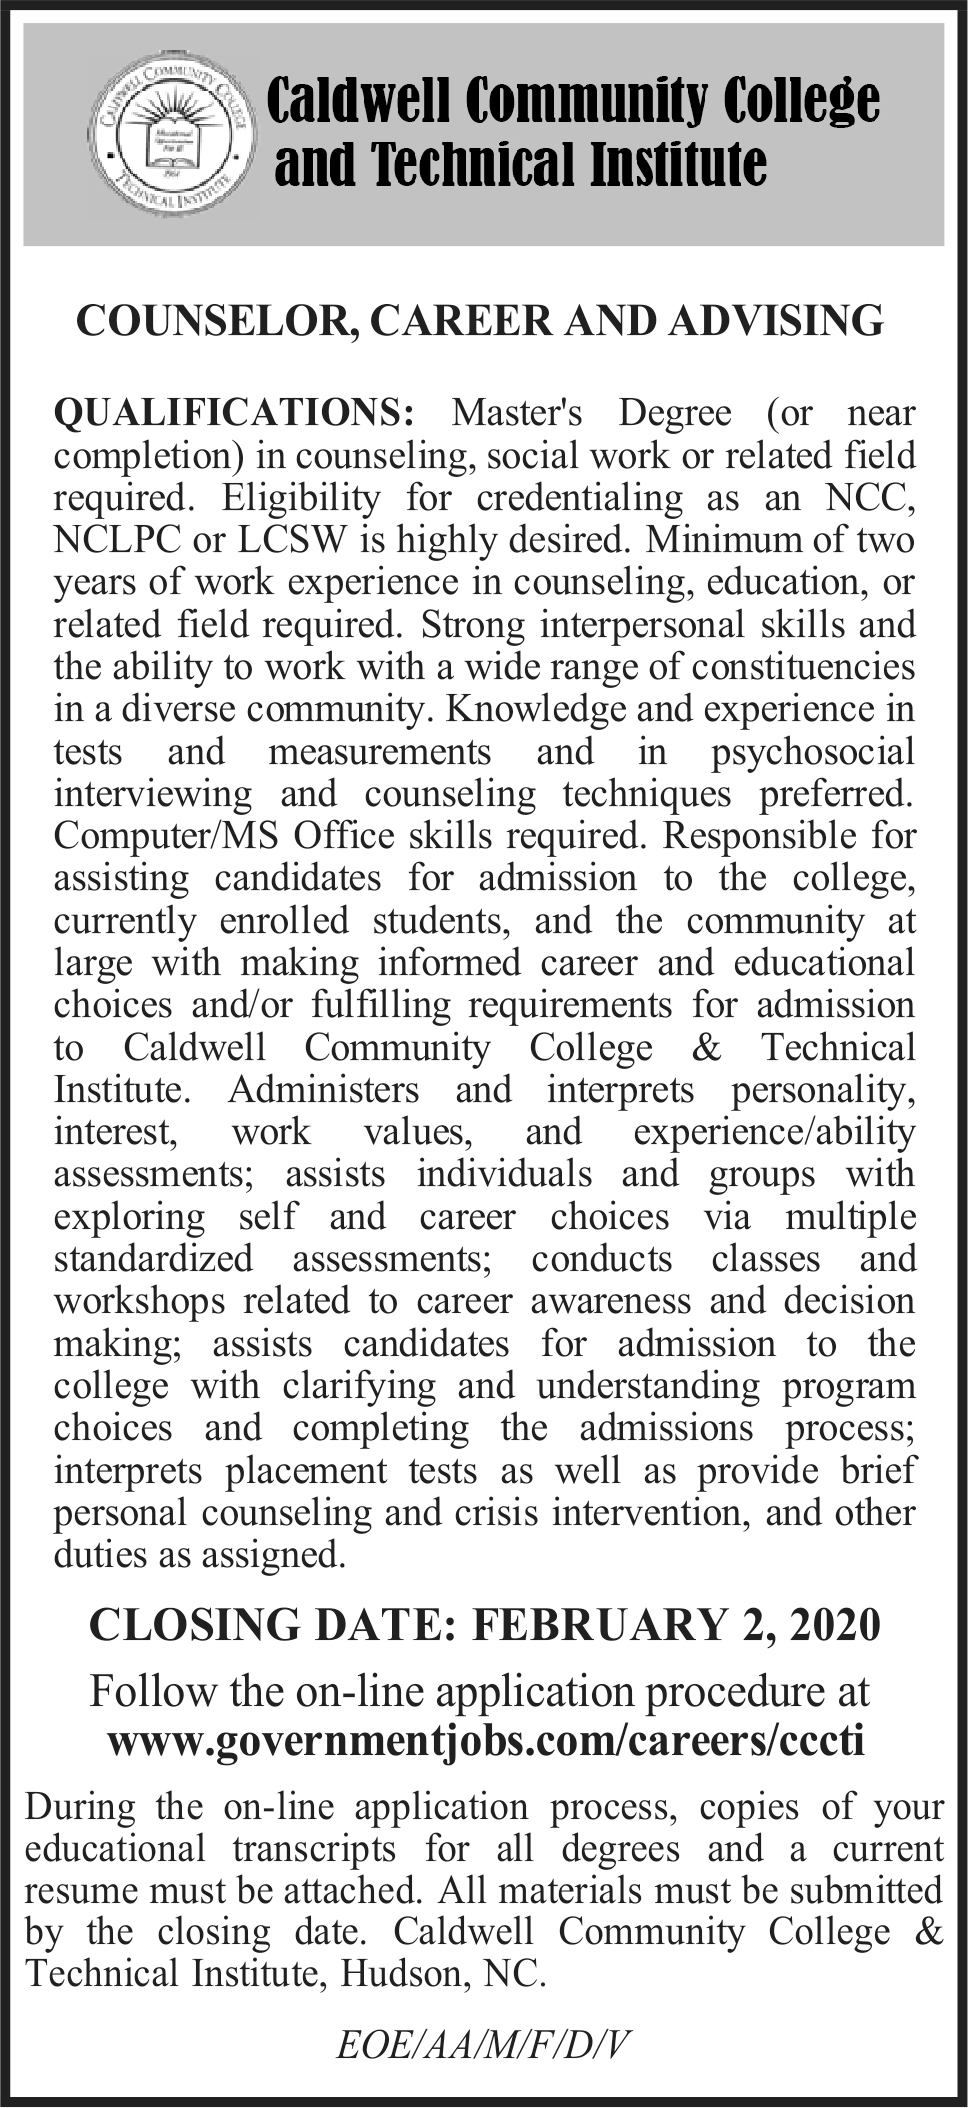 Counselor, Career and Advising Position